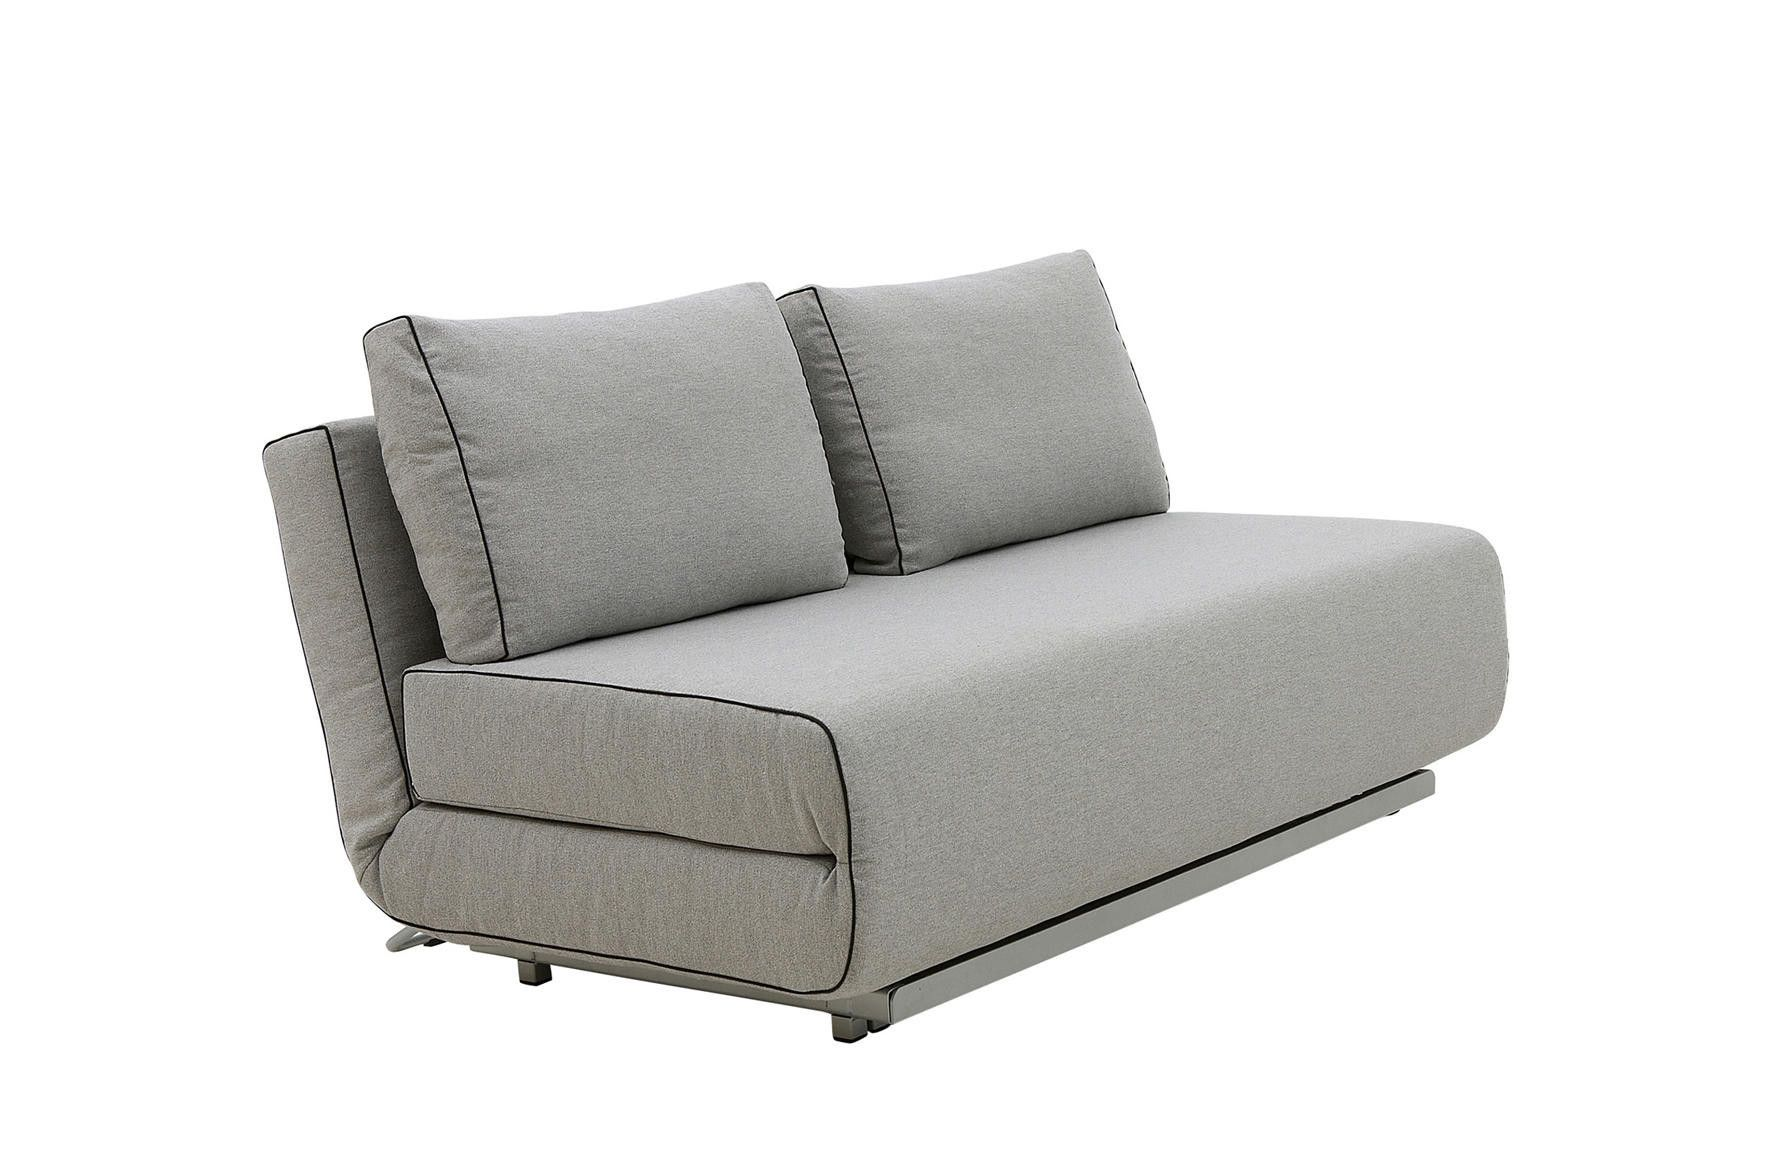 Softline Schlafsofa City